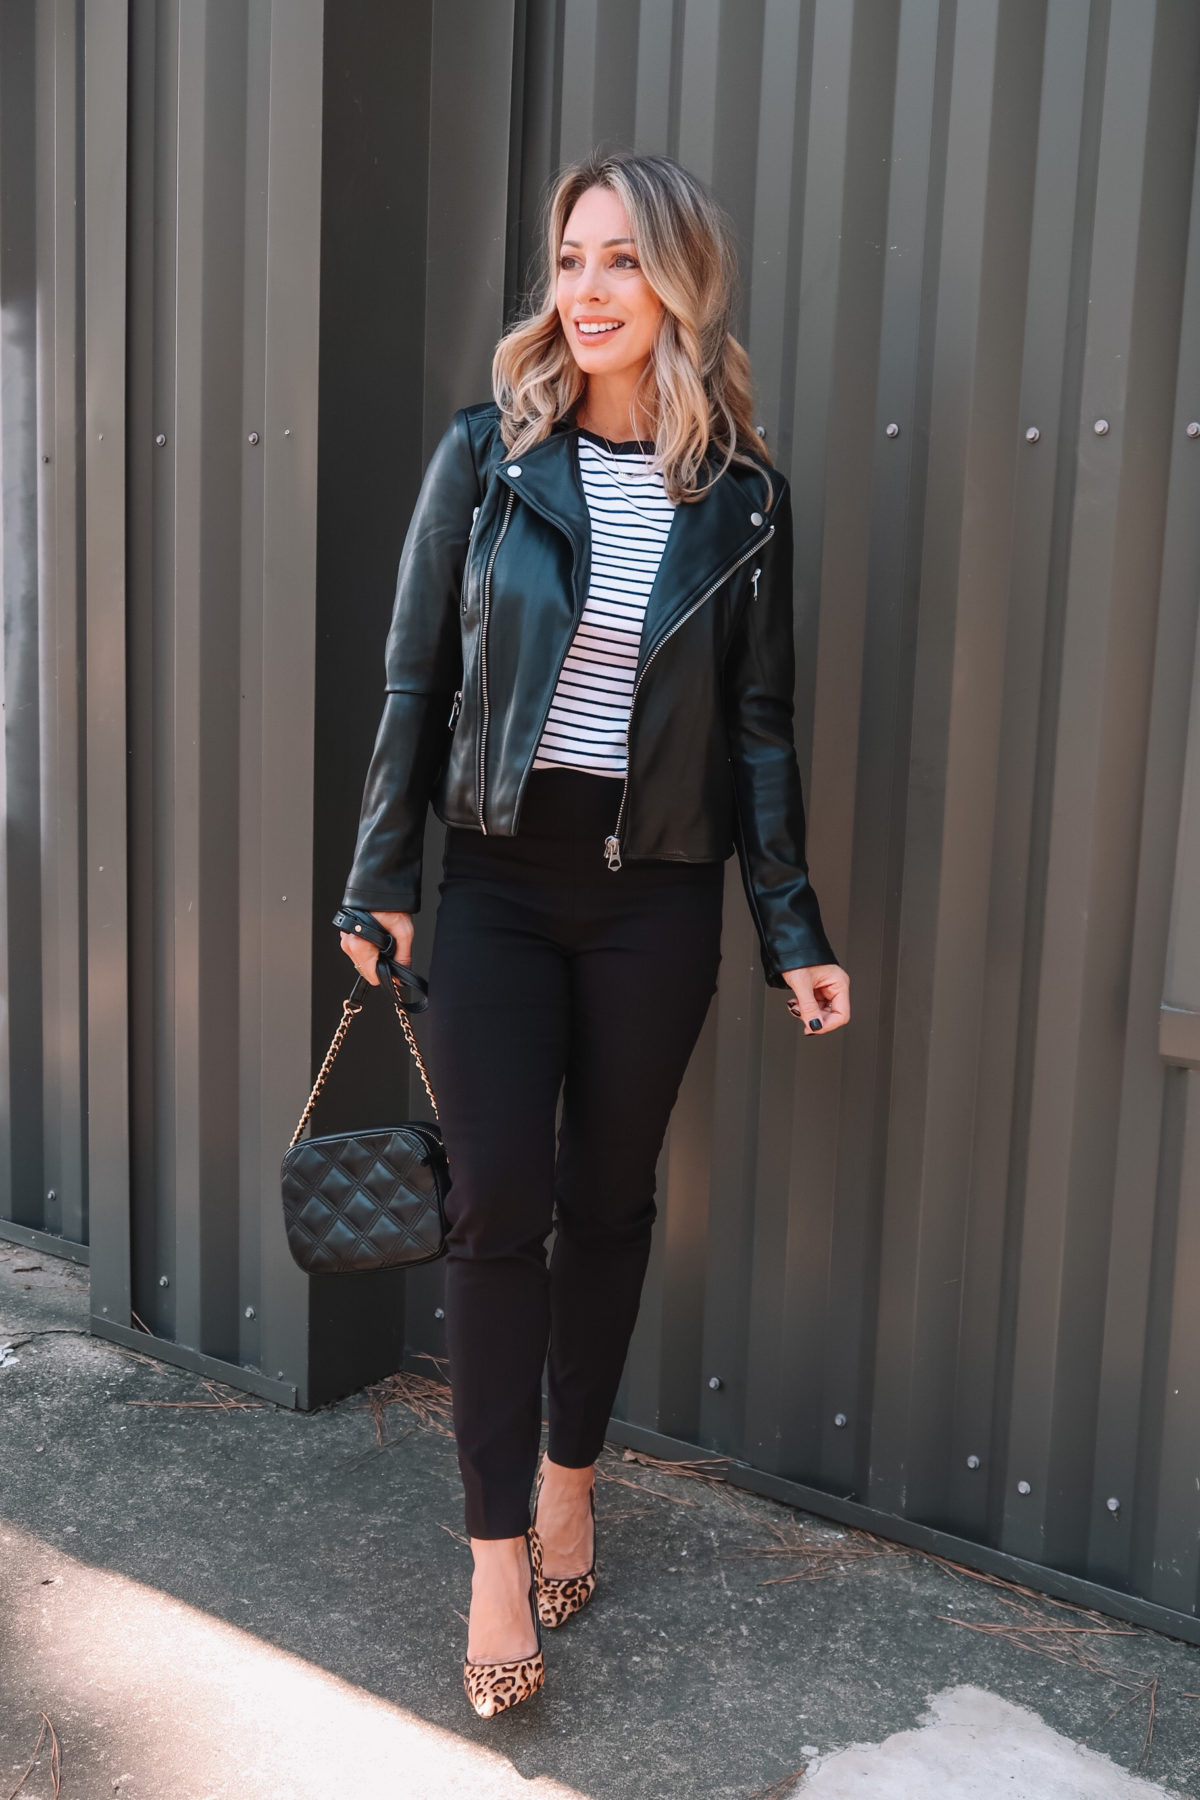 Outfits Lately, Striped Top, Faux Leather Jacket, Pants, Leopard Heels, Crossbody Bag